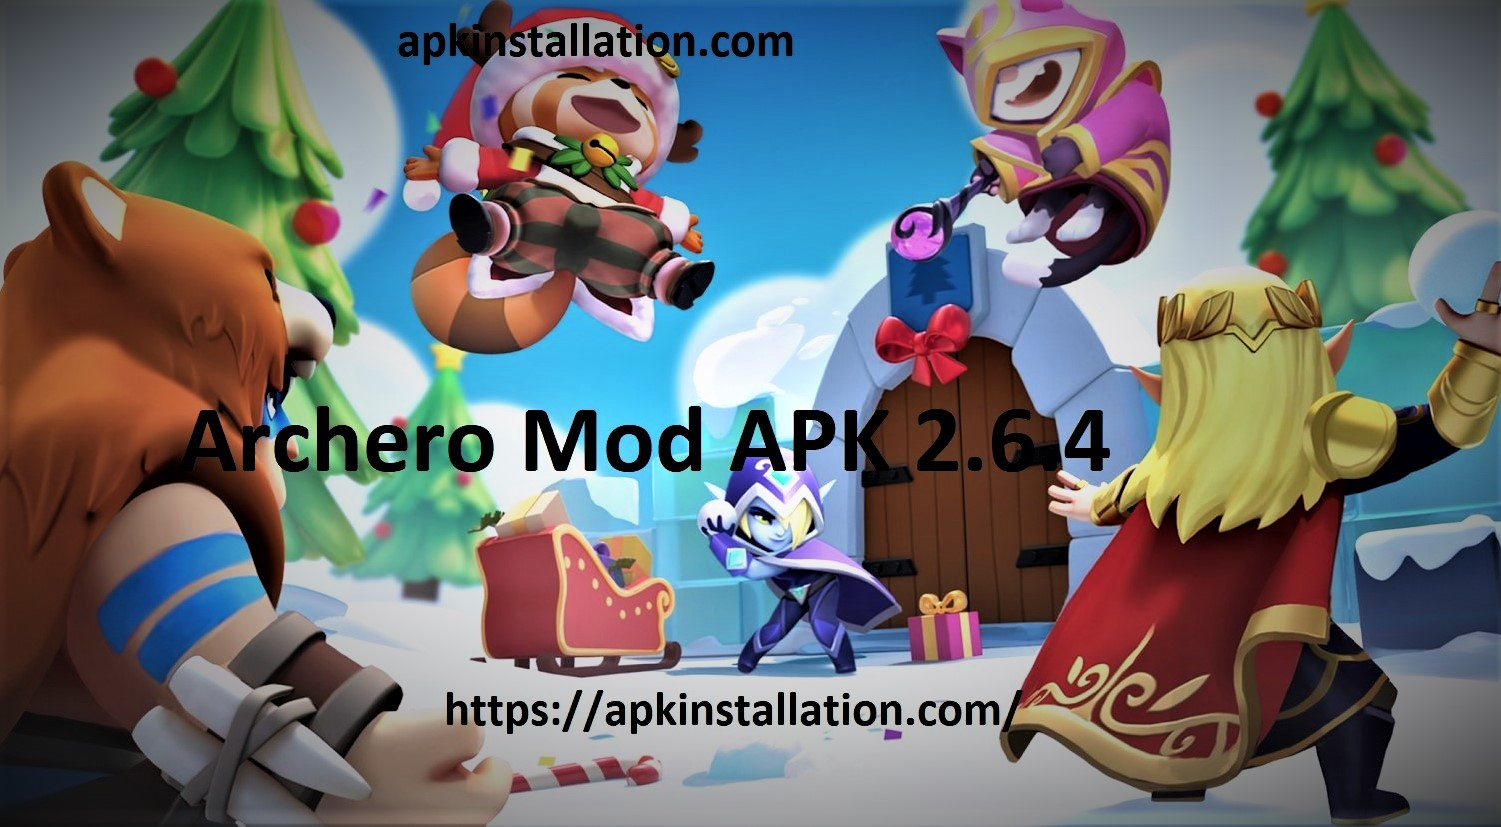 Archero Mod APK 2.6.4 Download